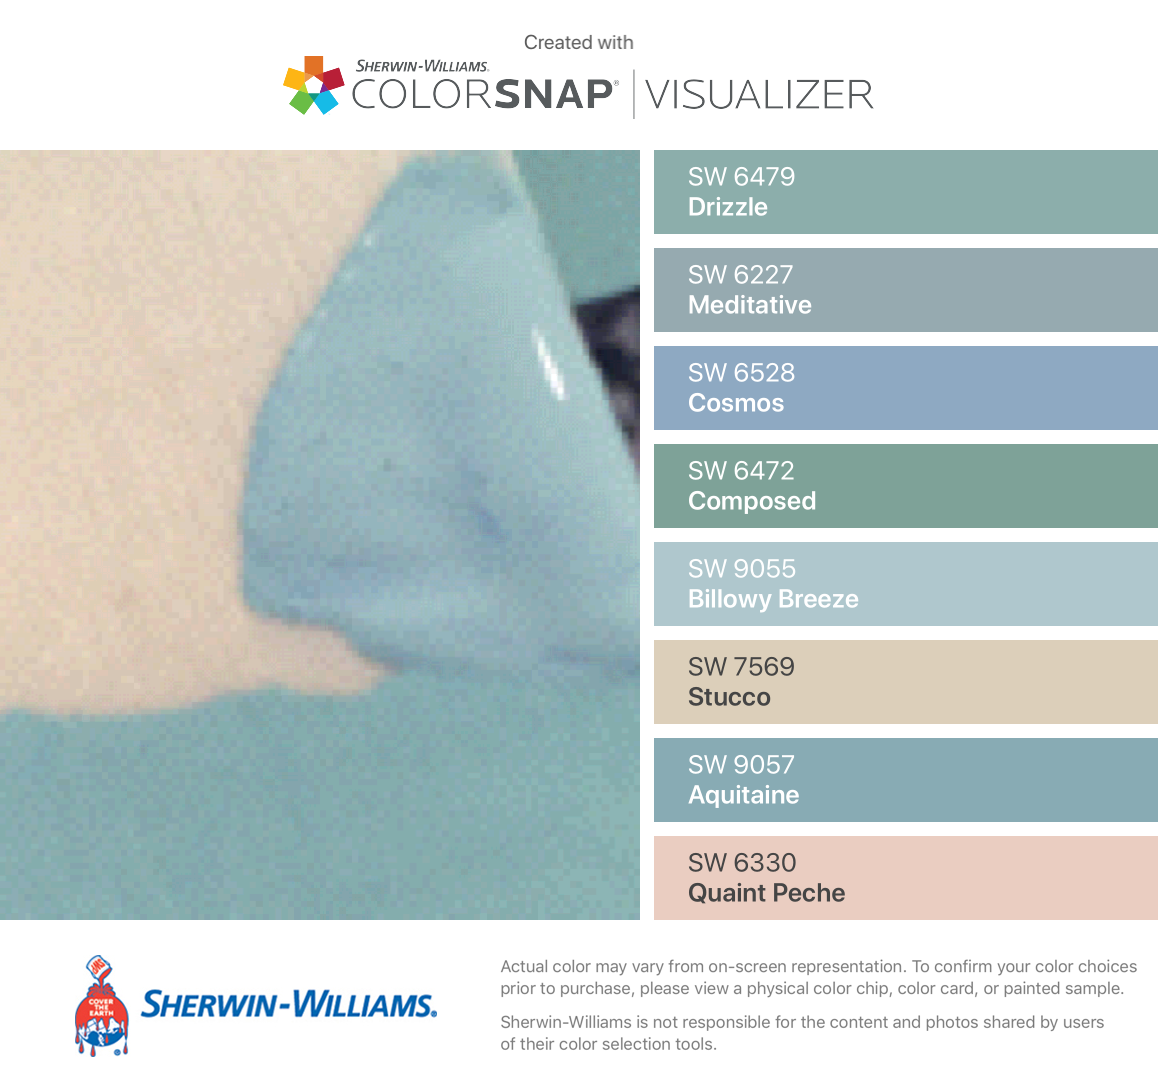 I Found These Colors With Colorsnap Visualizer For Iphone By Sherwin Williams Drizzle Sw 6479 Meditative Sw Paint Colors For Home Sherwin Williams Color